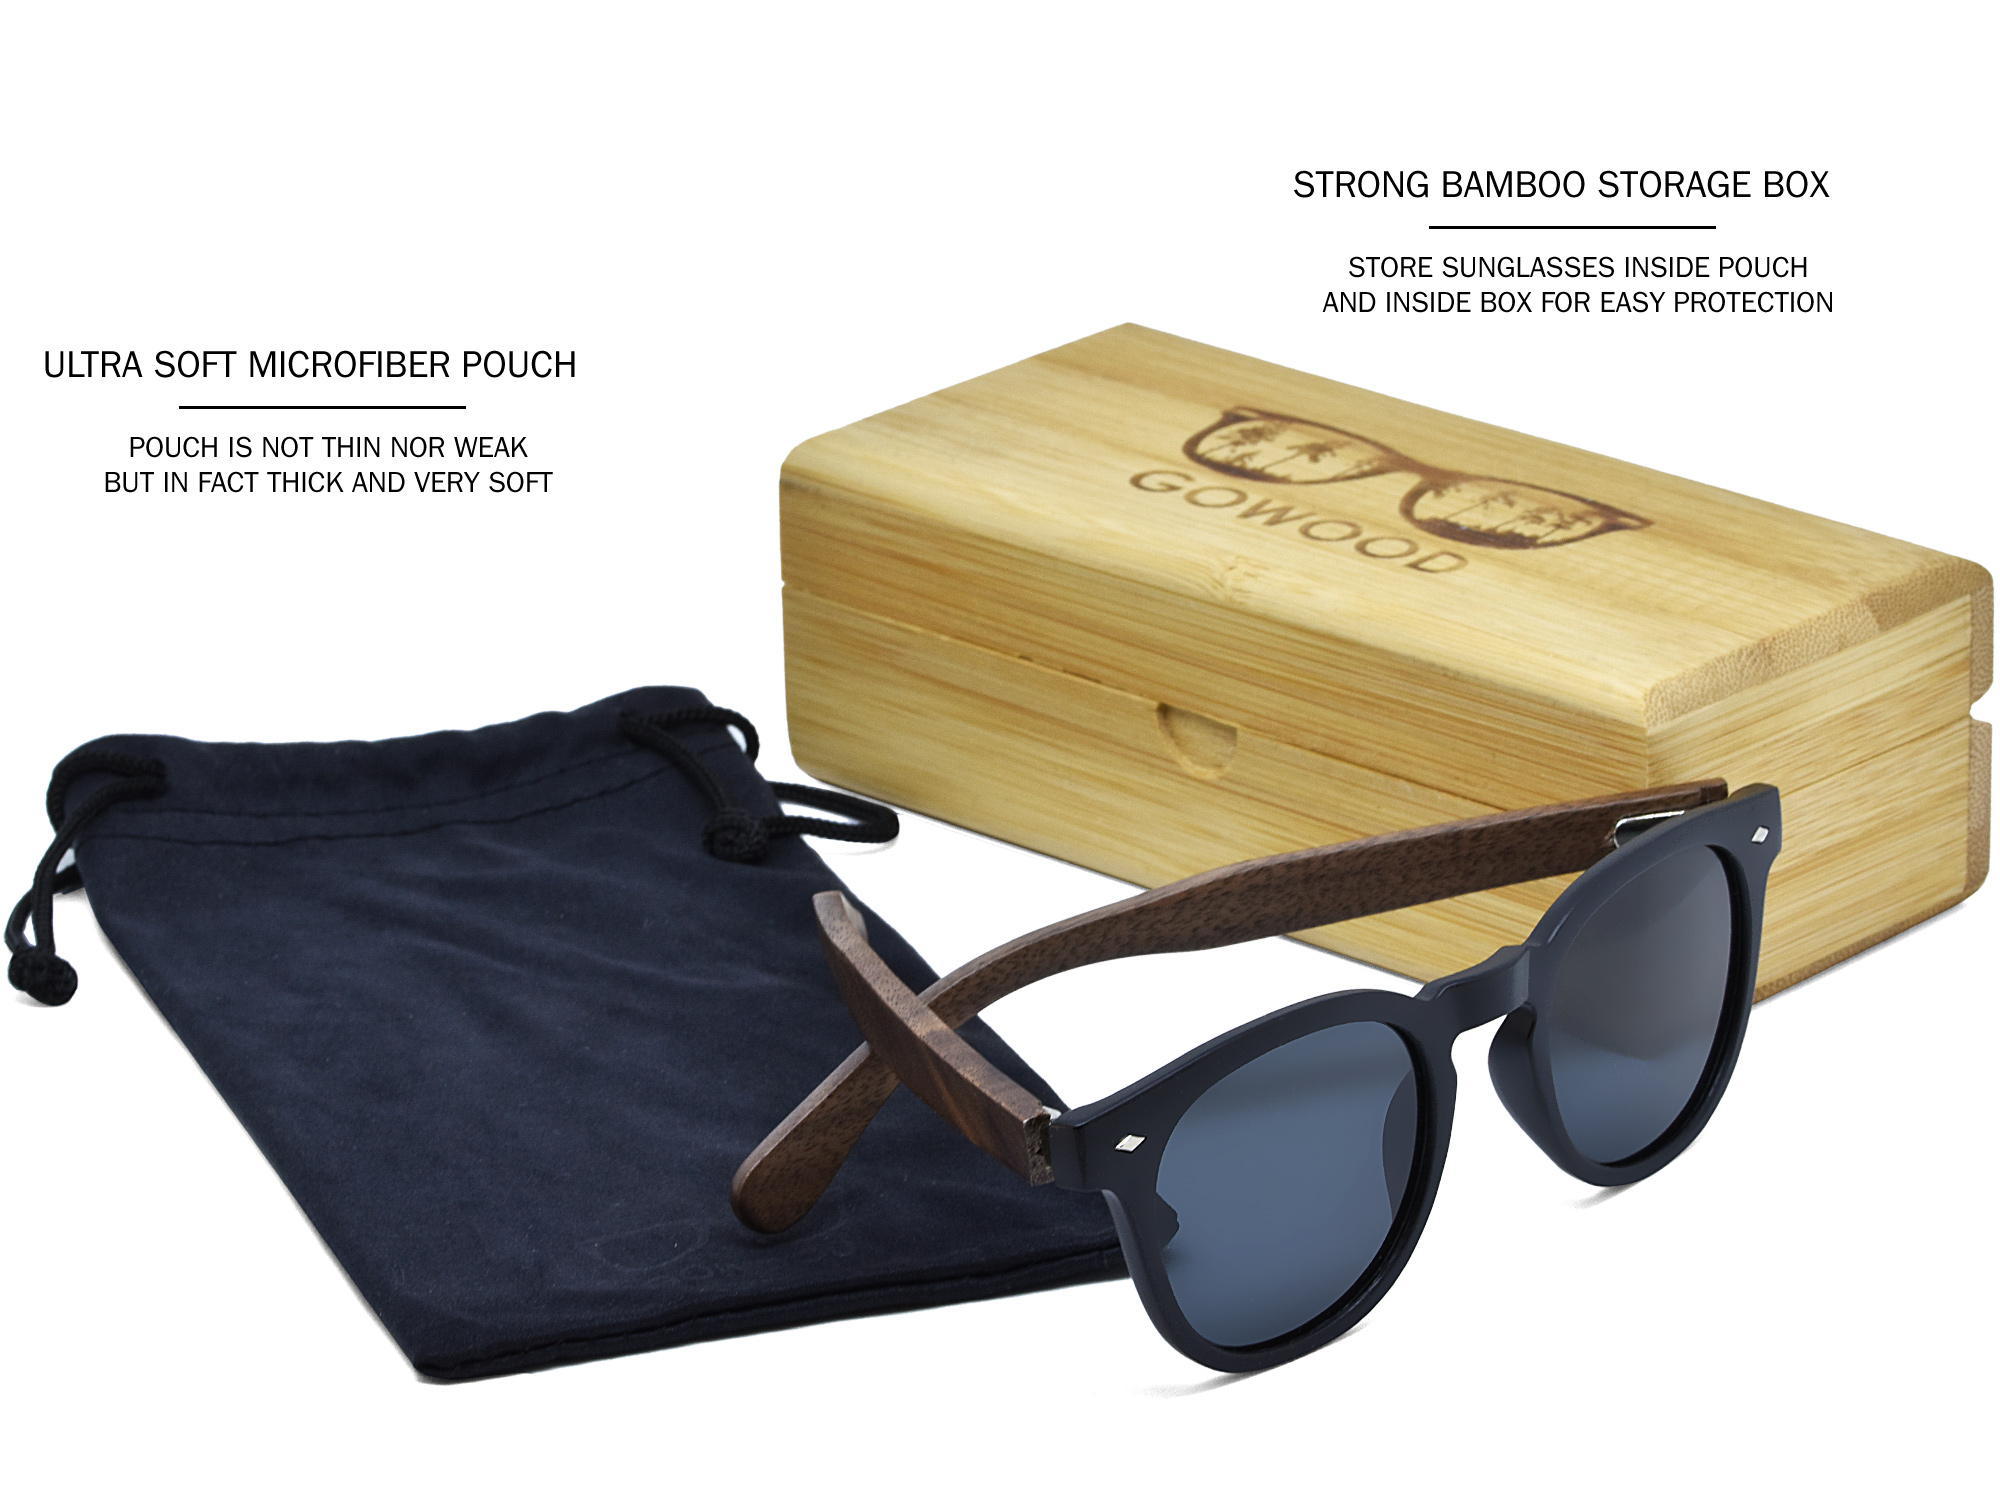 Round walnut wood sunglasses set